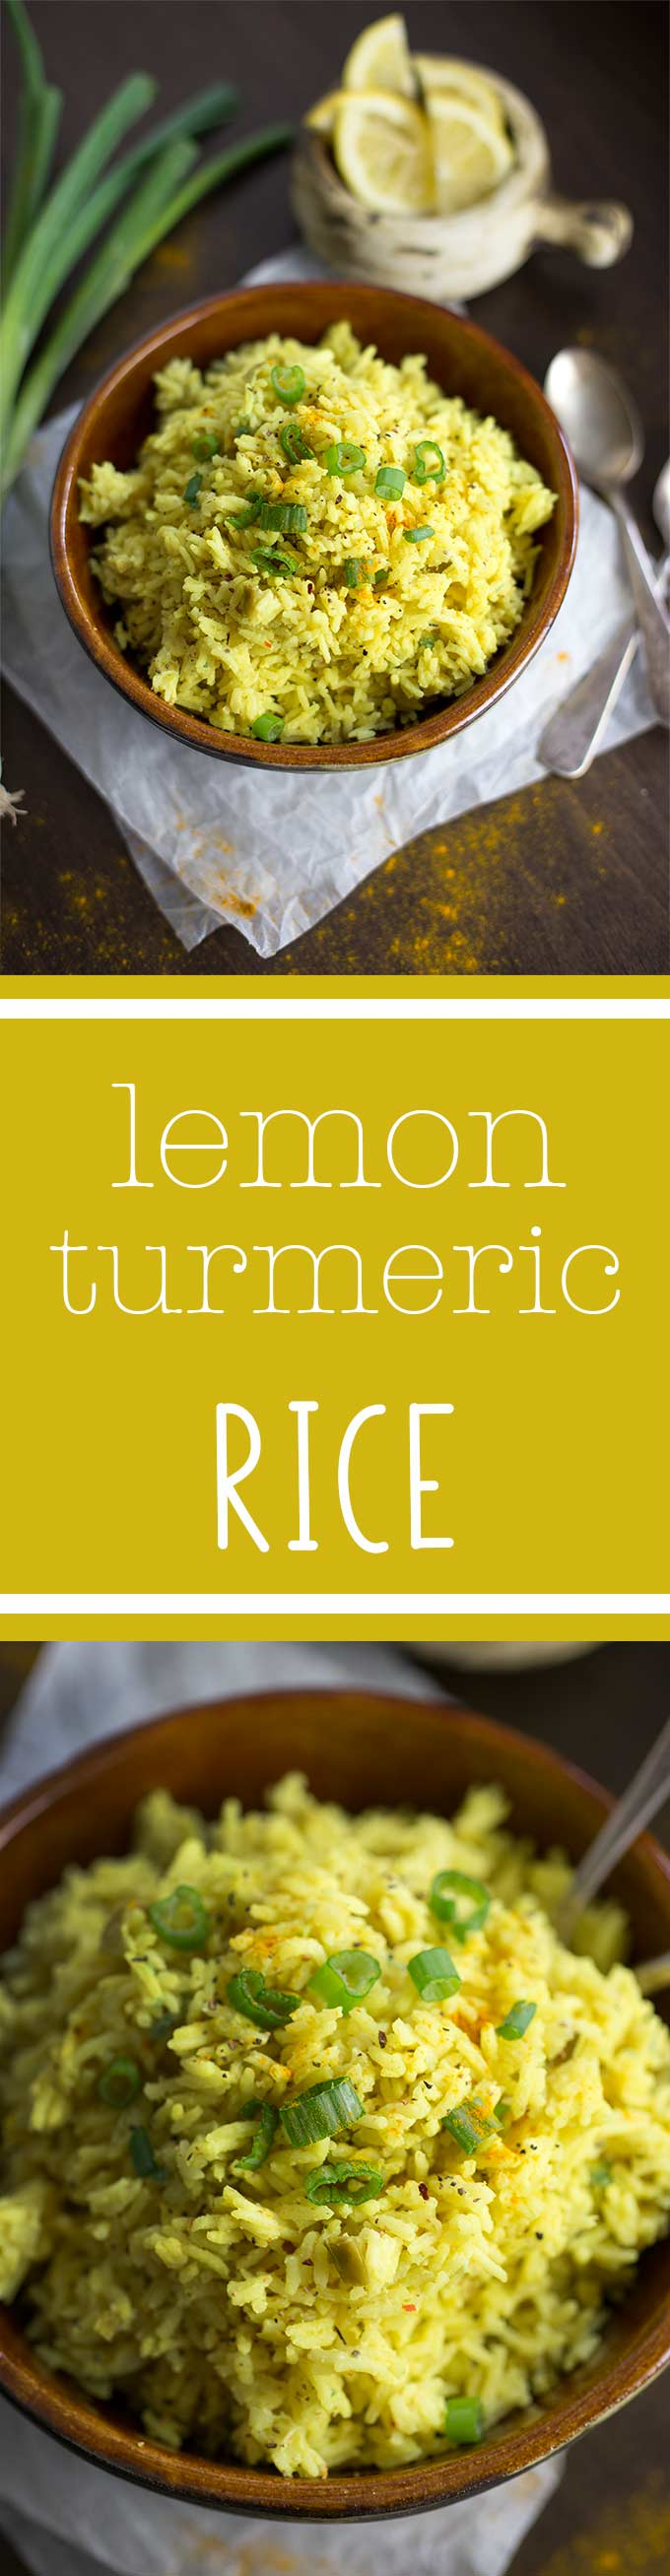 Lemon Turmeric Rice: A fragrant blend of garlic, lemon, turmeric and a touch of coconut turns ordinary rice into a bright, aromatic, delicious dish.